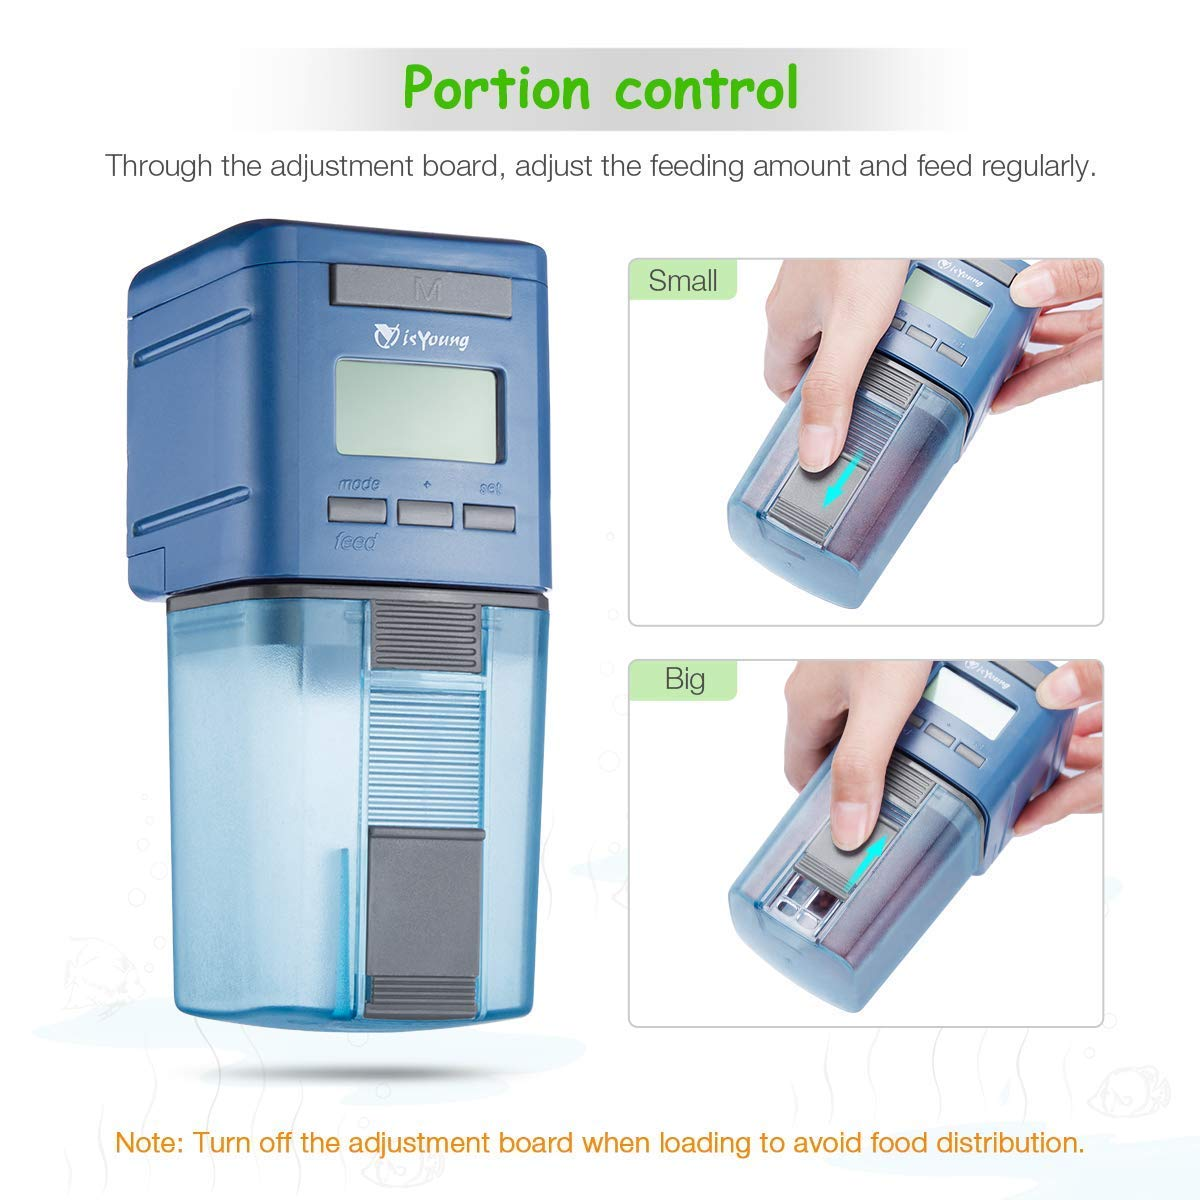 isYoung Aquarium Automatic Fish Feeder Auto Fish Food Dispenser Electronic Timer Feeder for Fish Tank with LCD Display and Feeding Time Setting, Suitable for Aquarium, Fish Tank and Turtle Tank